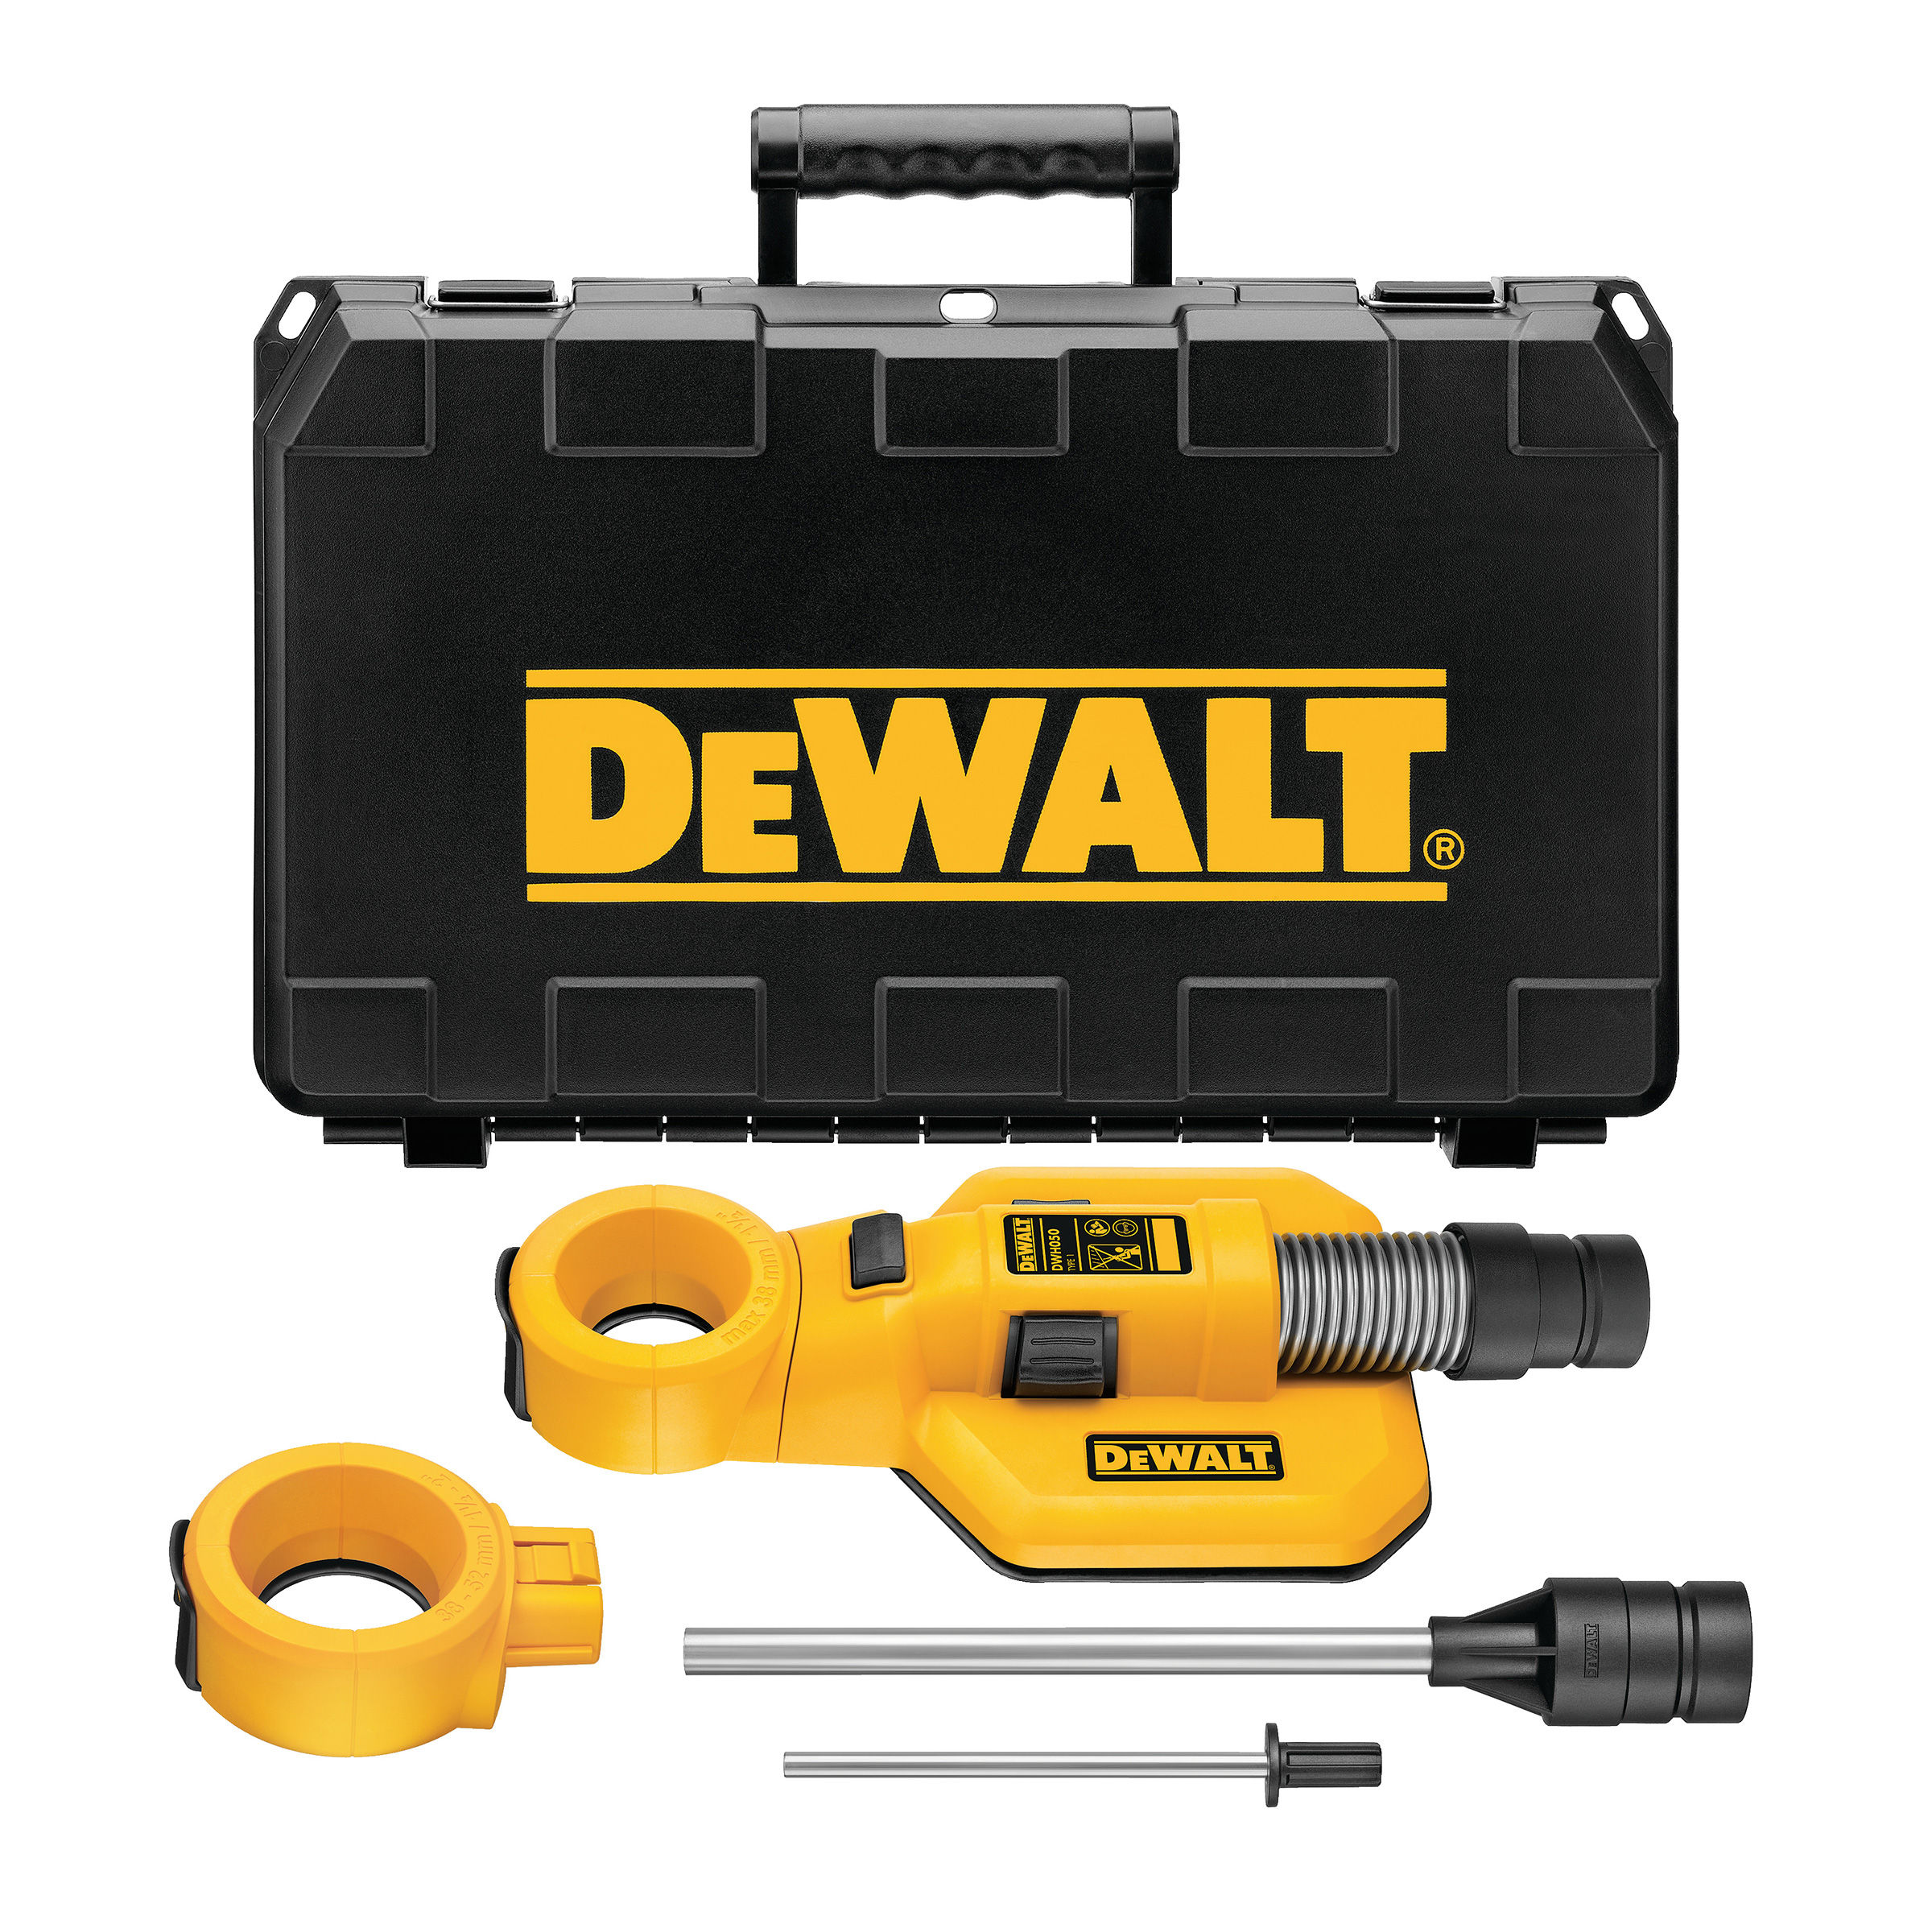 Dewalt Dust Extractor >> Dewalt Dwh050 Drilling Dust Extraction System Hole Cleaning